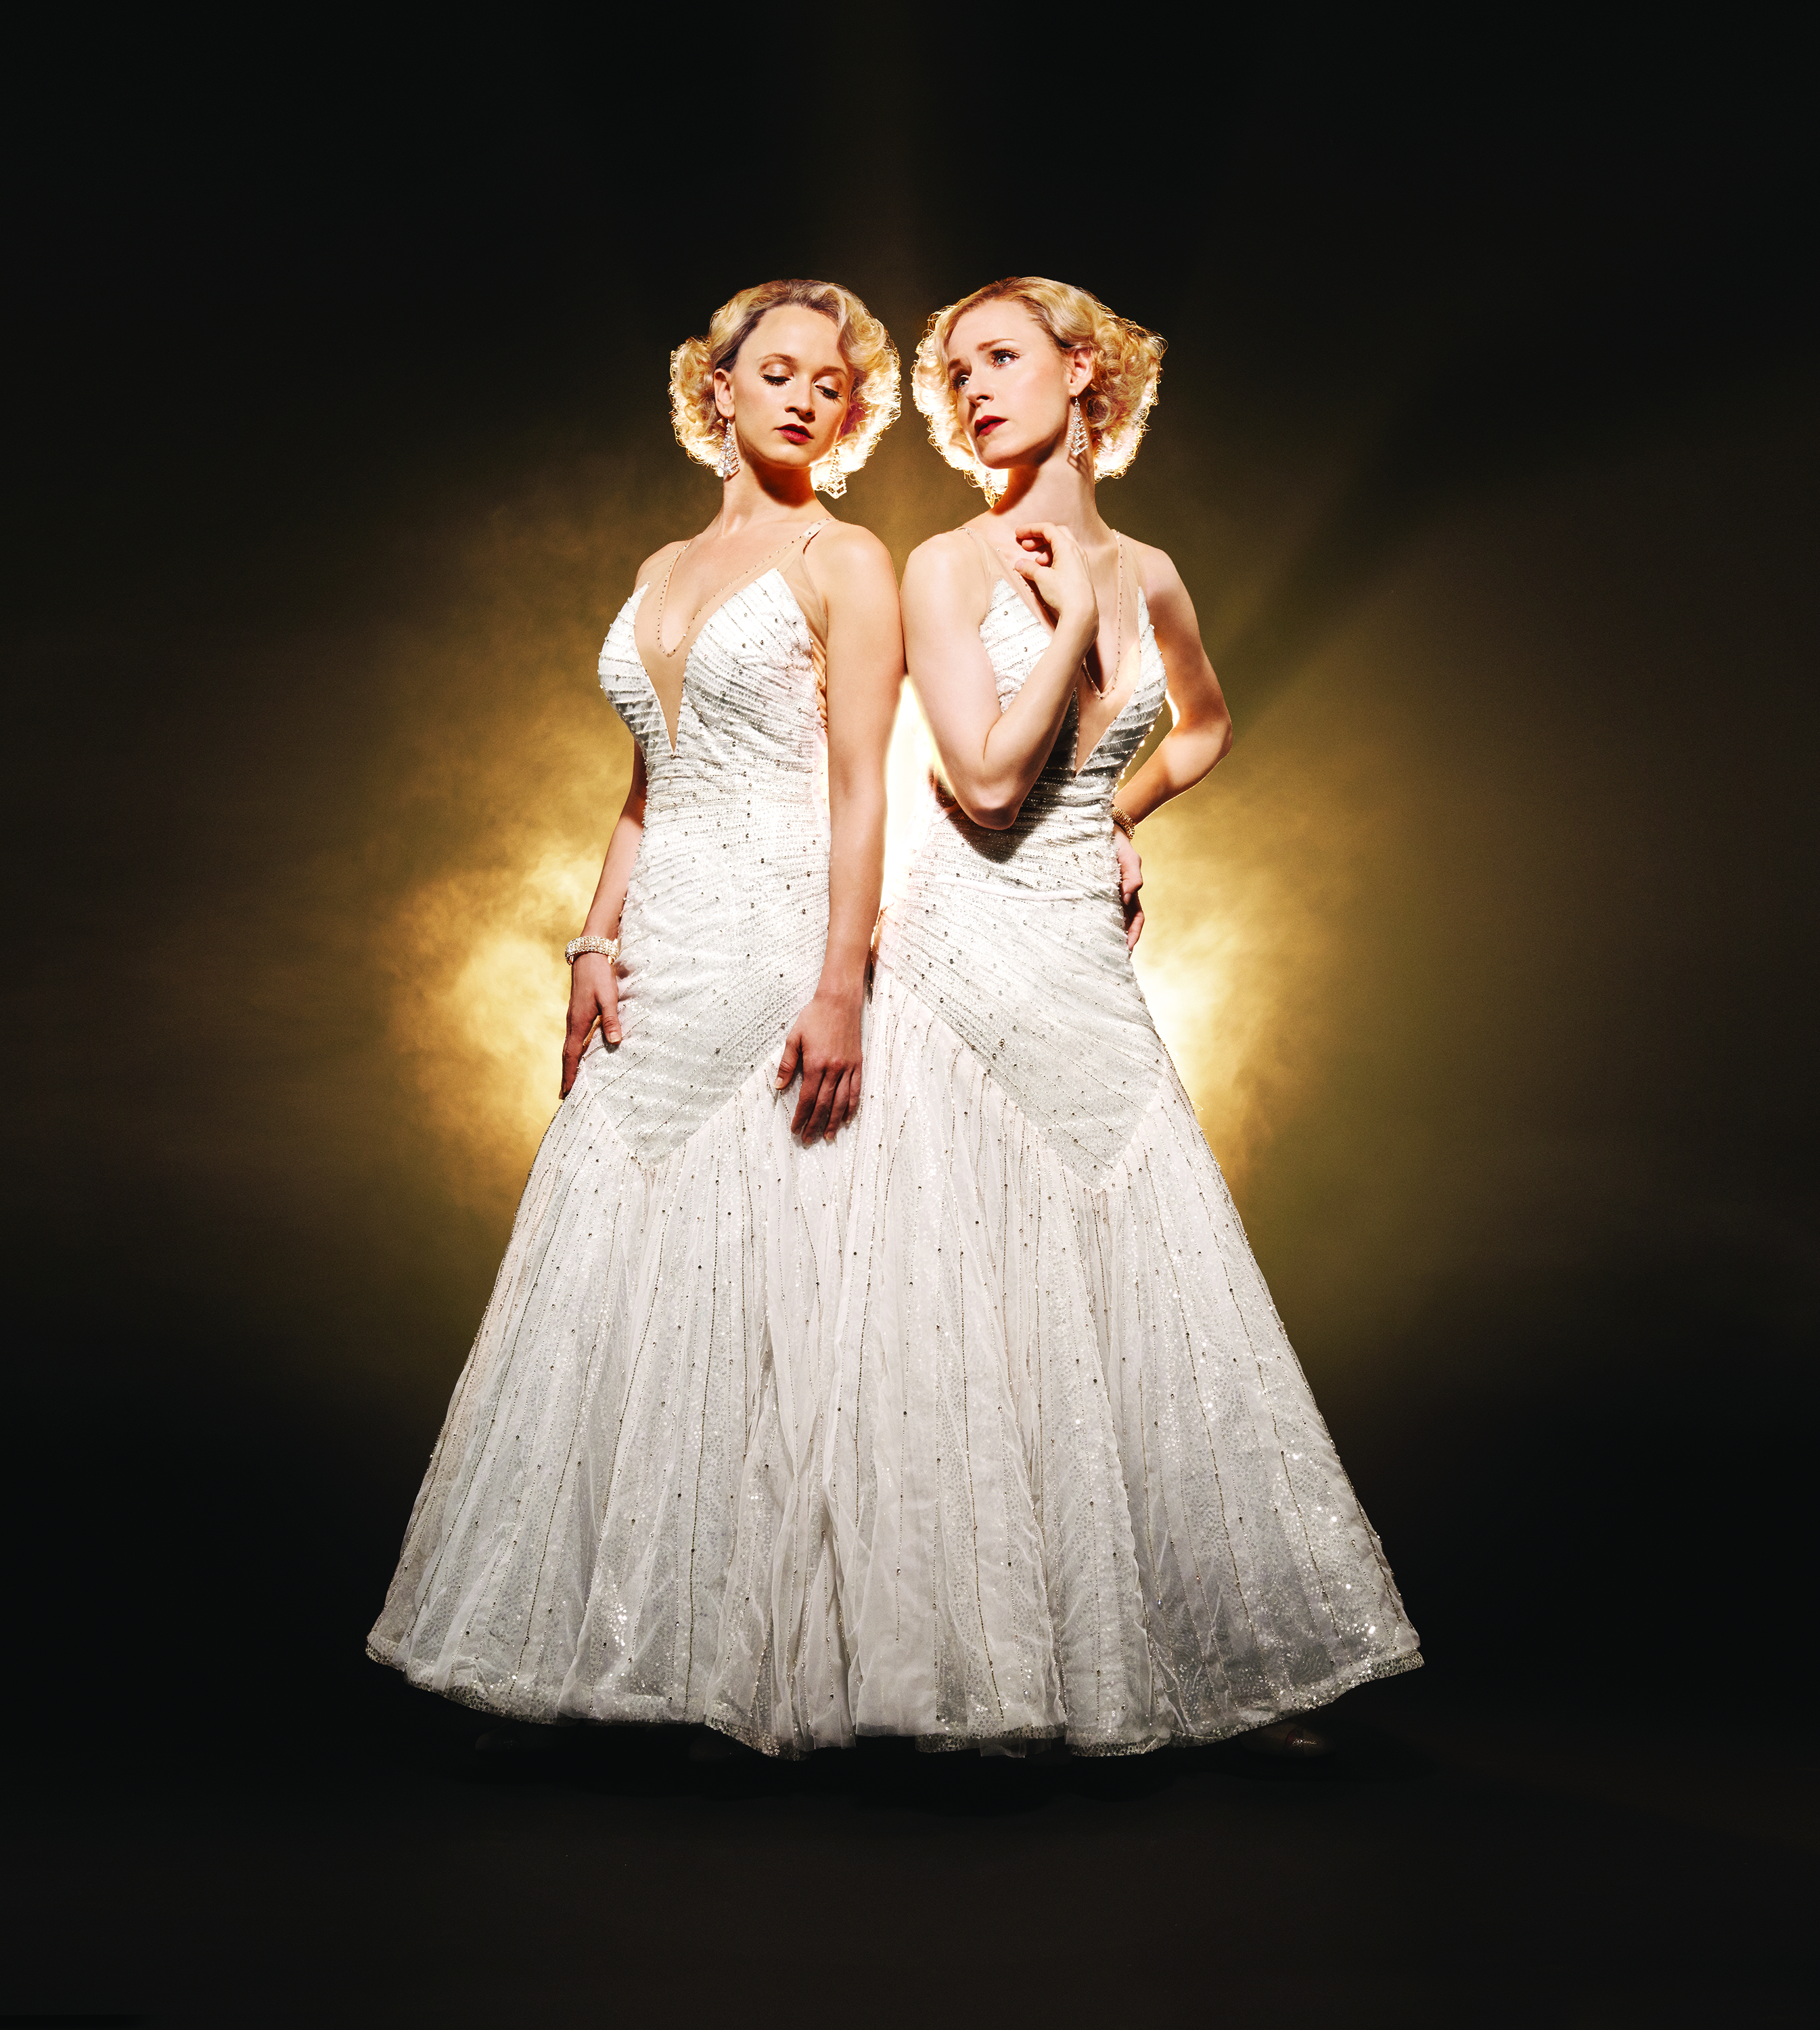 http://s3.amazonaws.com/broadwaybox/mediaspot/SIDE_SHOW_-_Emily_Padgett_and_Erin_Davie._photo_by_Andrew_Eccles_1.jpg